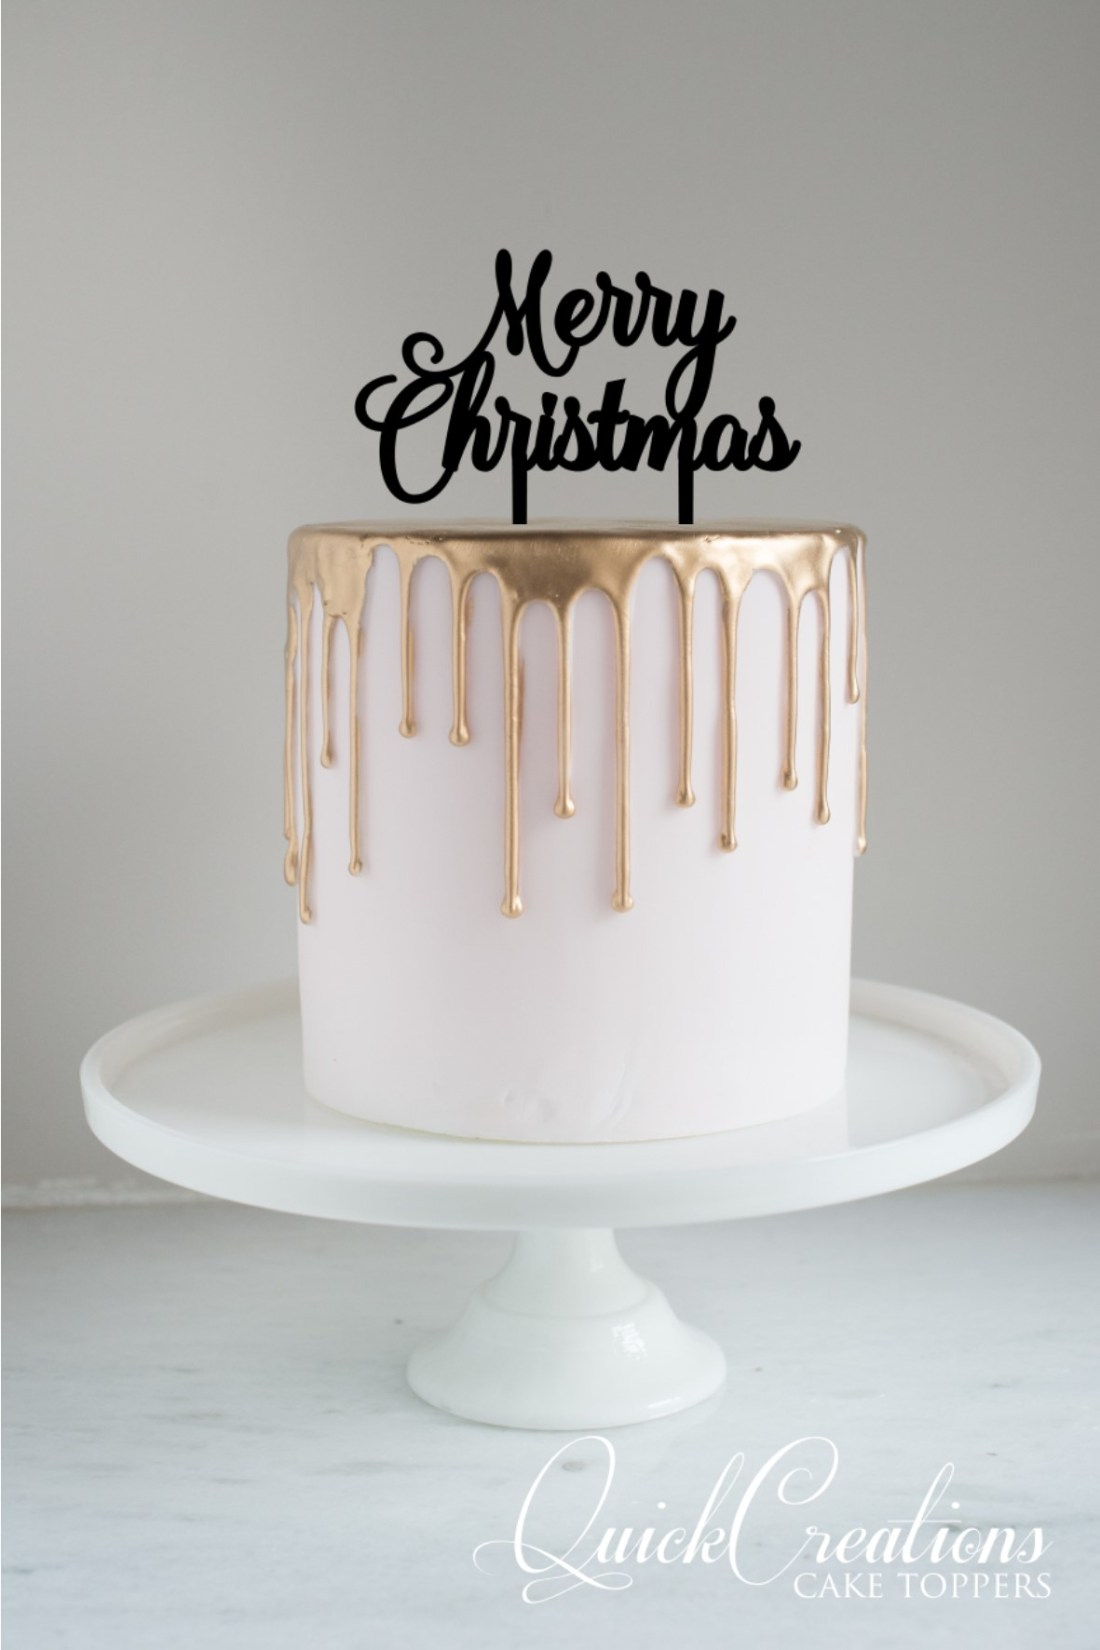 Quick Creations Cake Topper - Merry Christmas